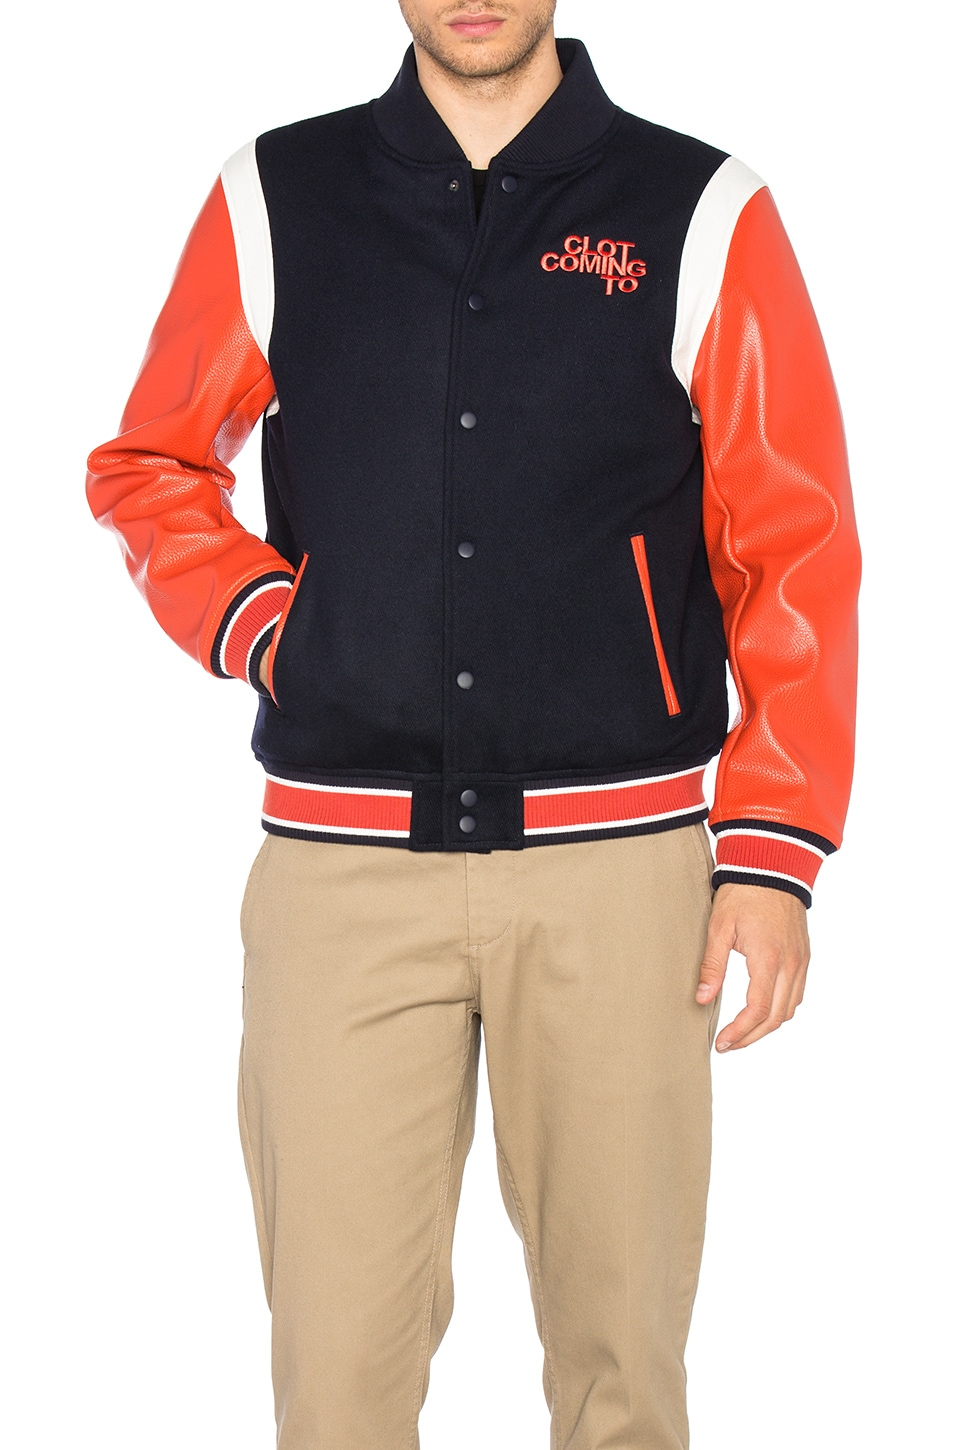 Photo of x REVOLVE Stadium Jacket by CLOT men clothes